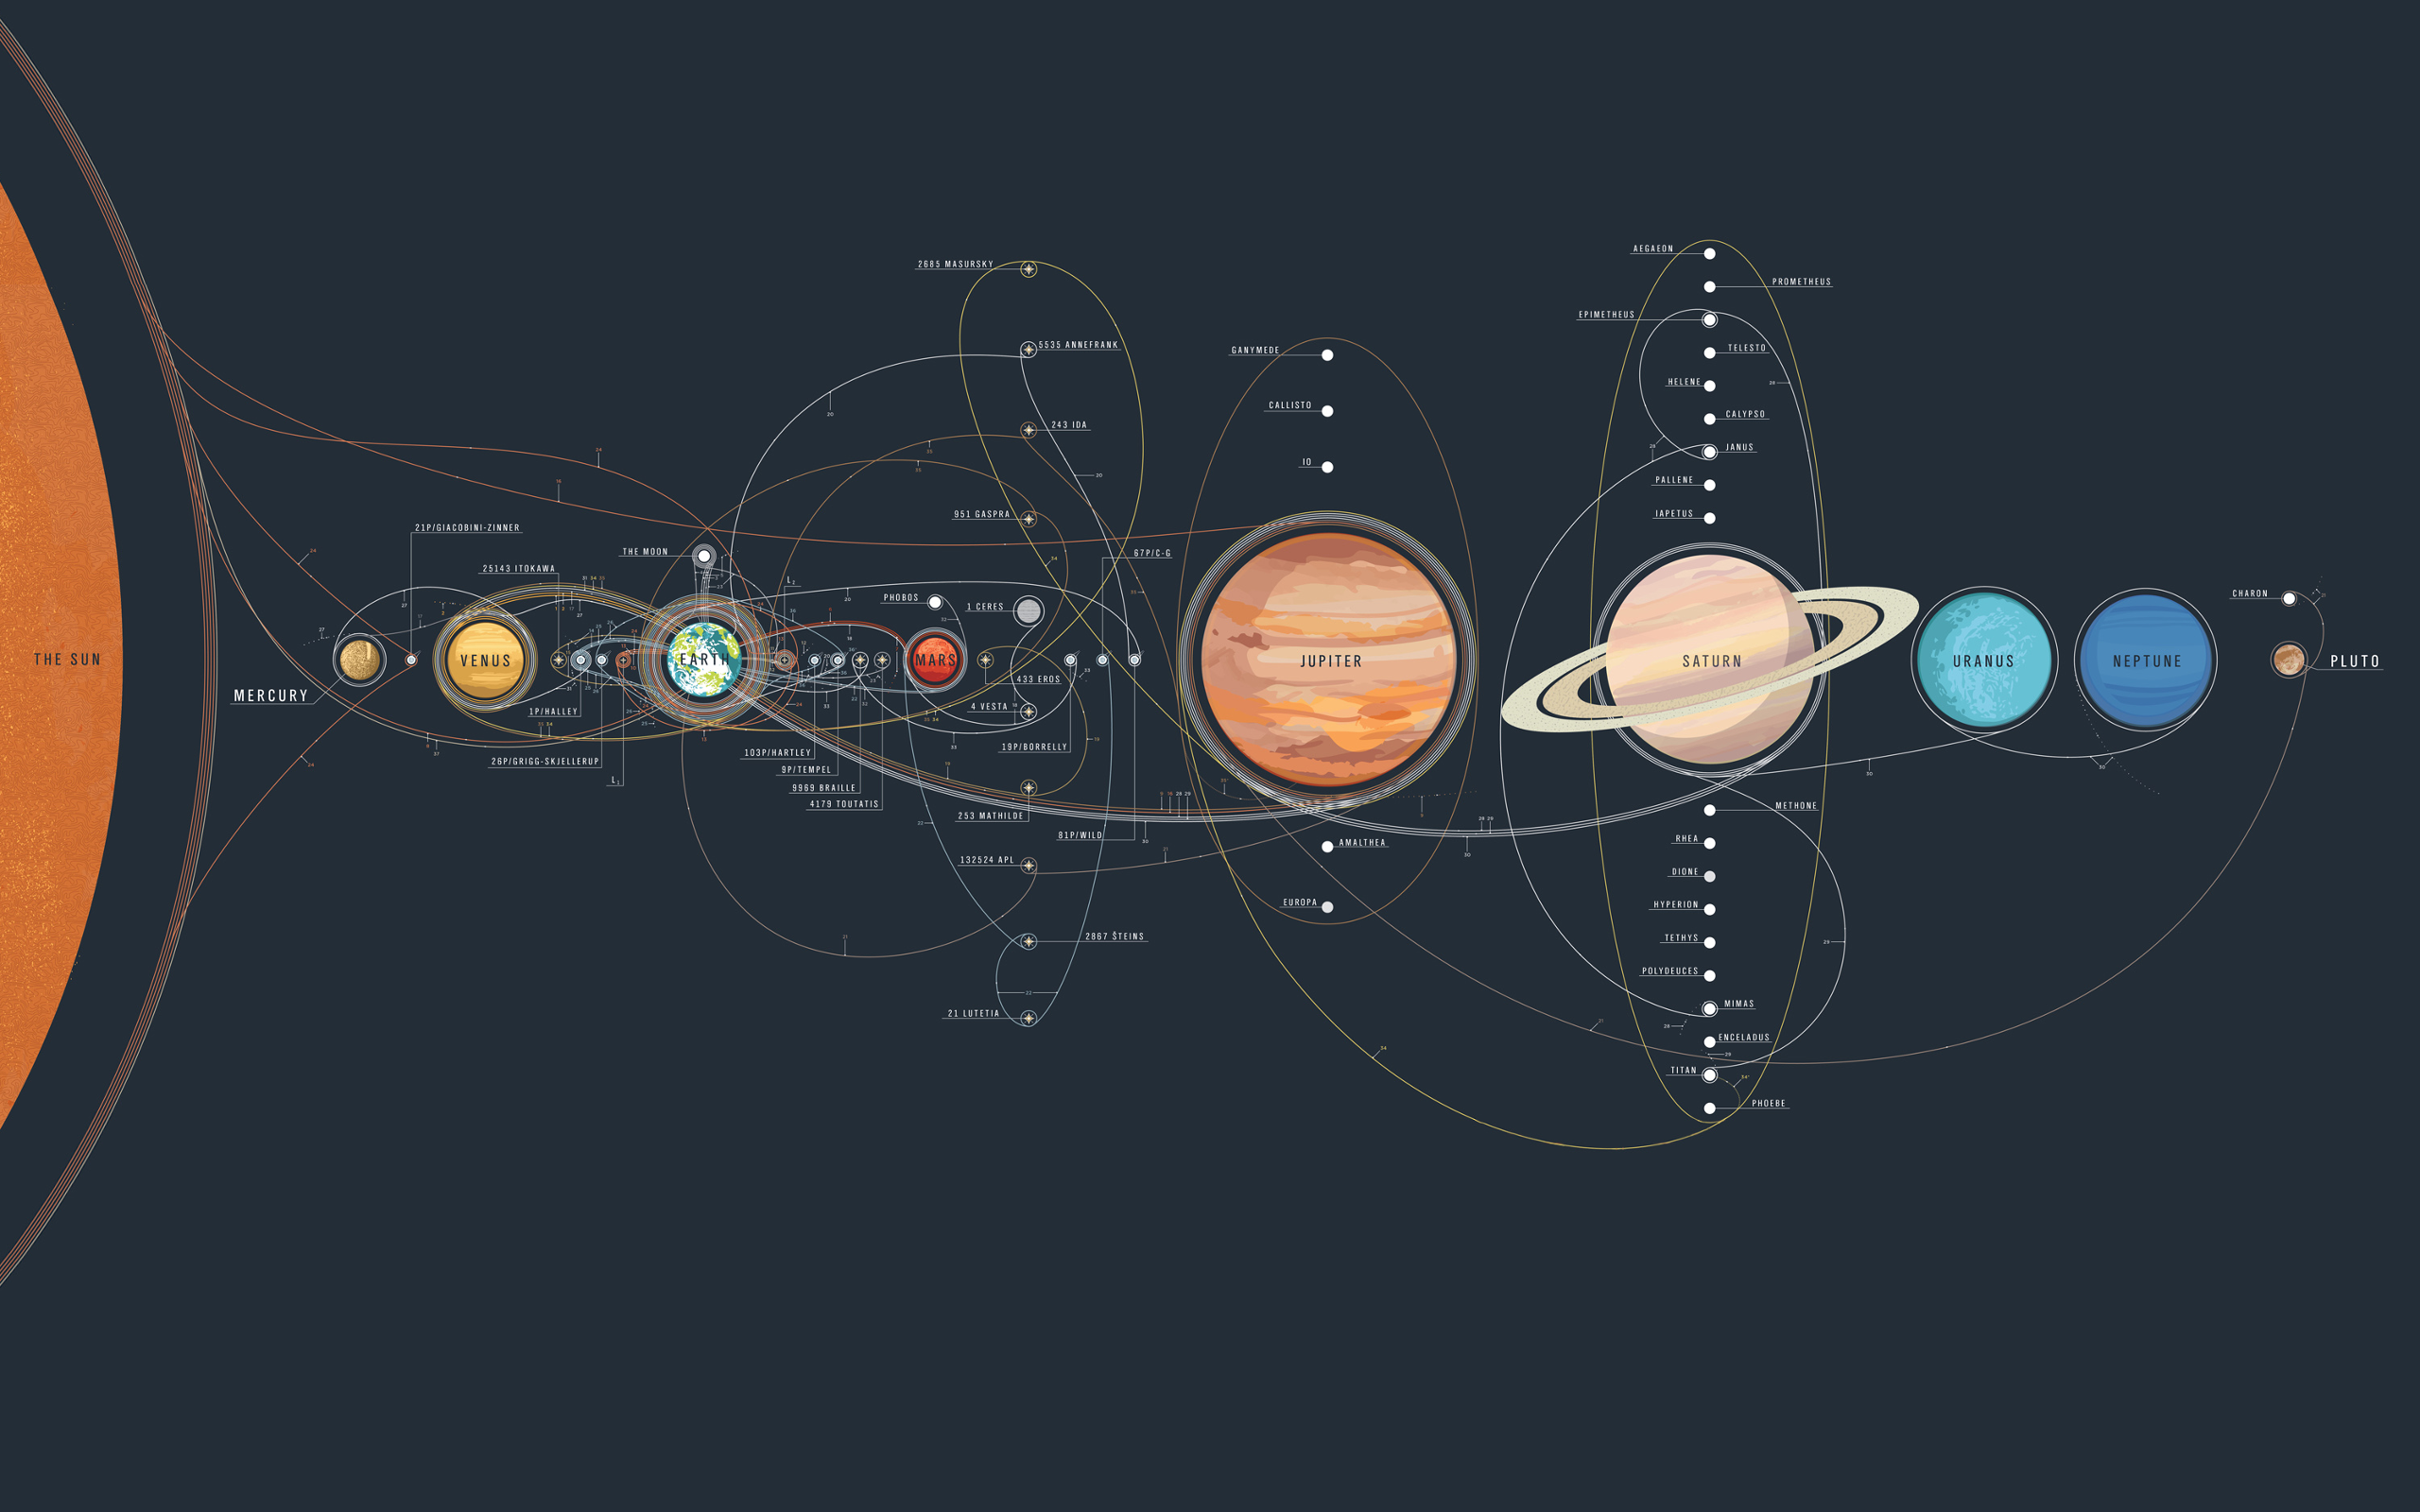 General 2560x1600 space exploration universe Solar System NASA Earth Mars Venus Uranus Neptune Saturn Mercury Pluto